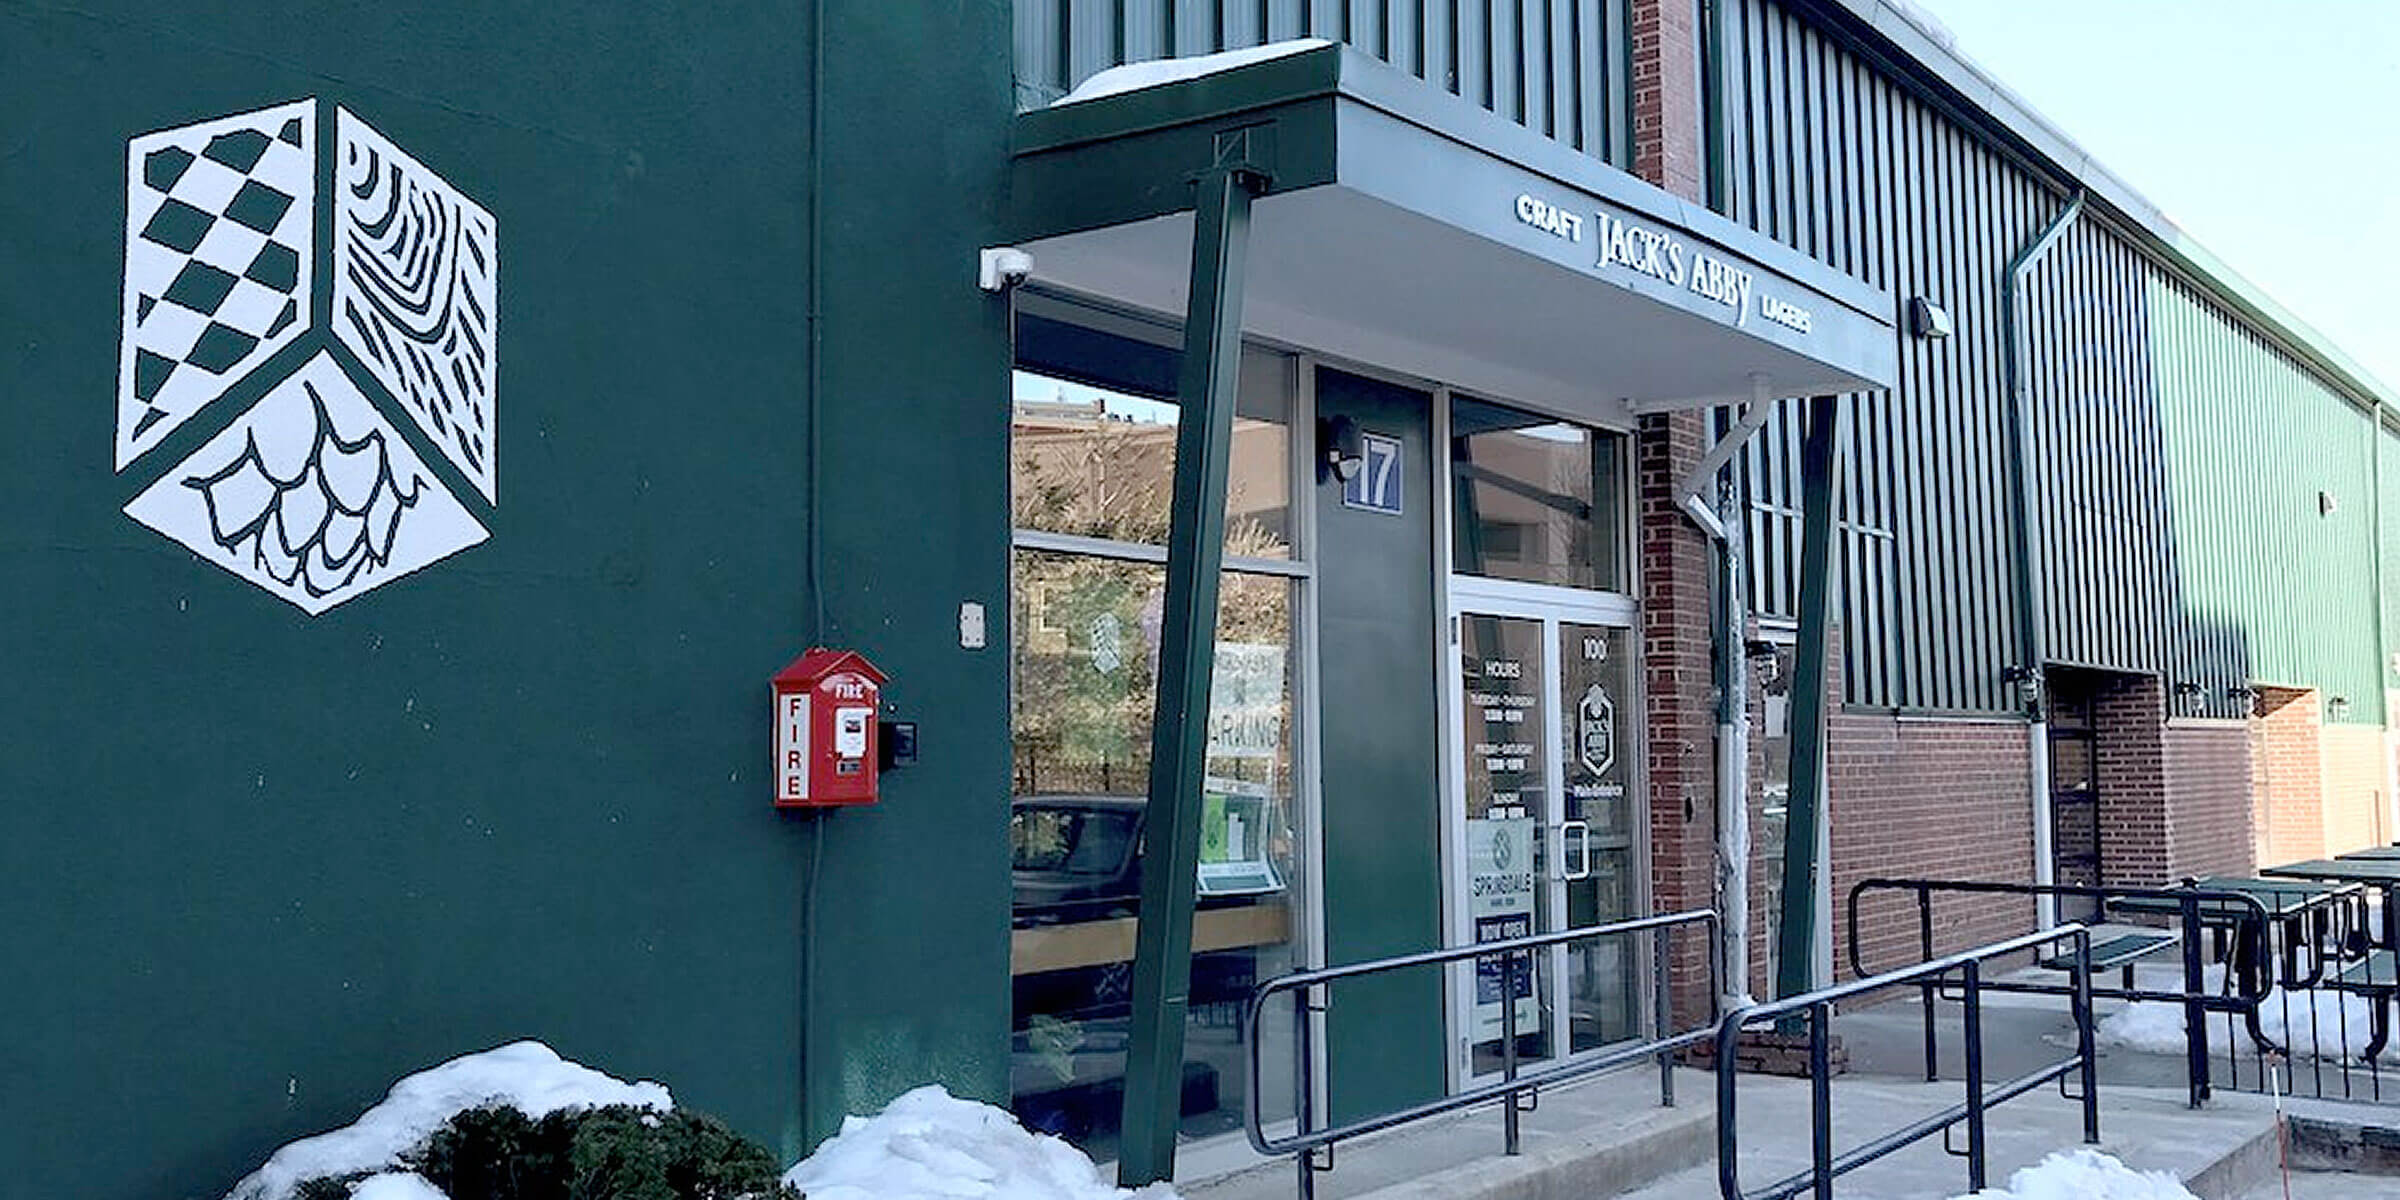 Outside the entrance to Jack's Beer Hall & Kitchen at Jack's Abby Craft Lagers in Framingham, Massachusetts